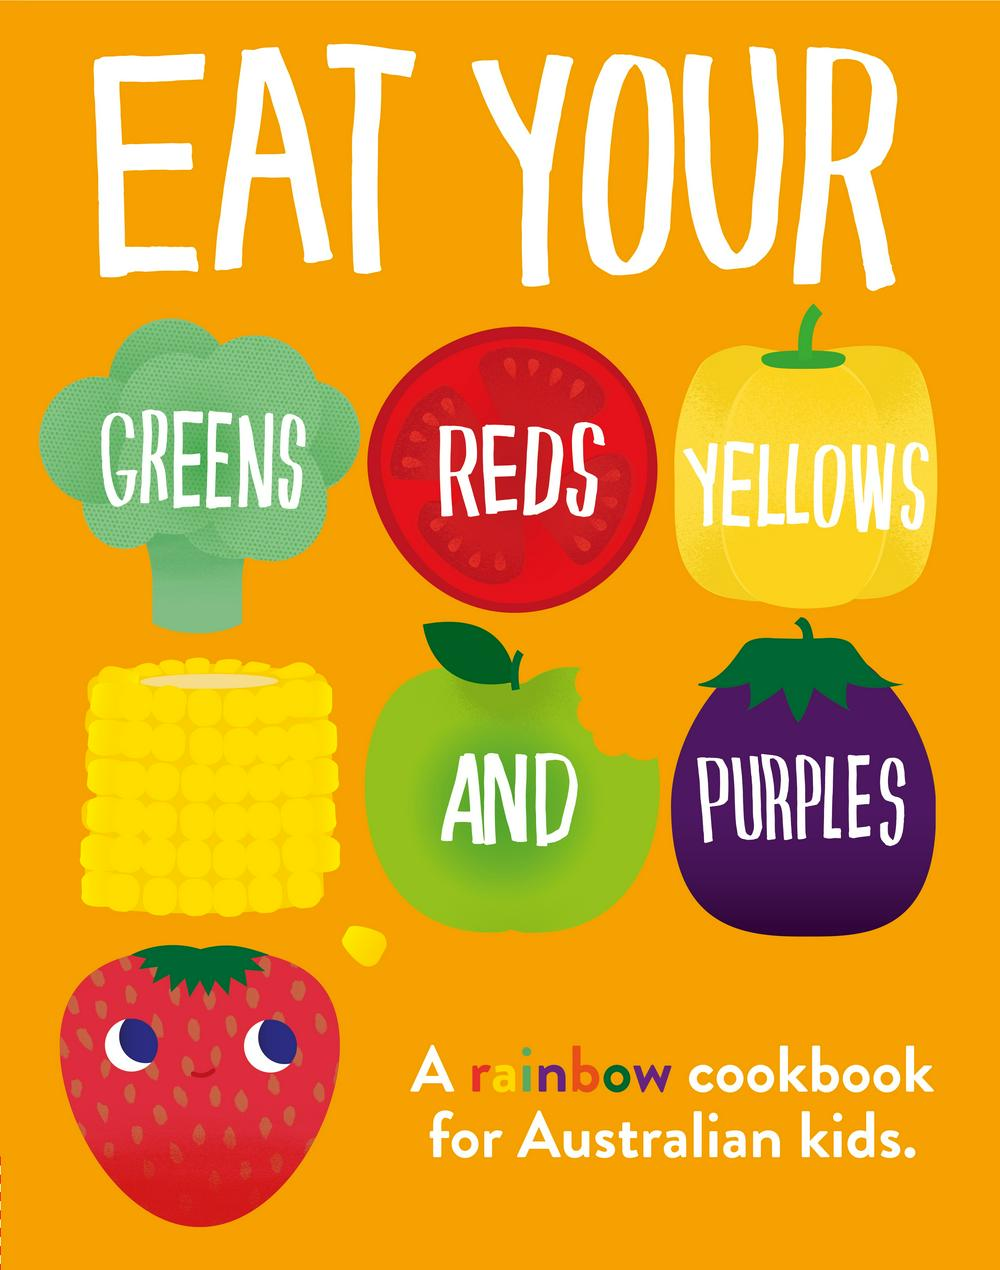 Eat Your Greens, Reds, Yellows and Purples by DK Australia, ISBN: 9780143769804